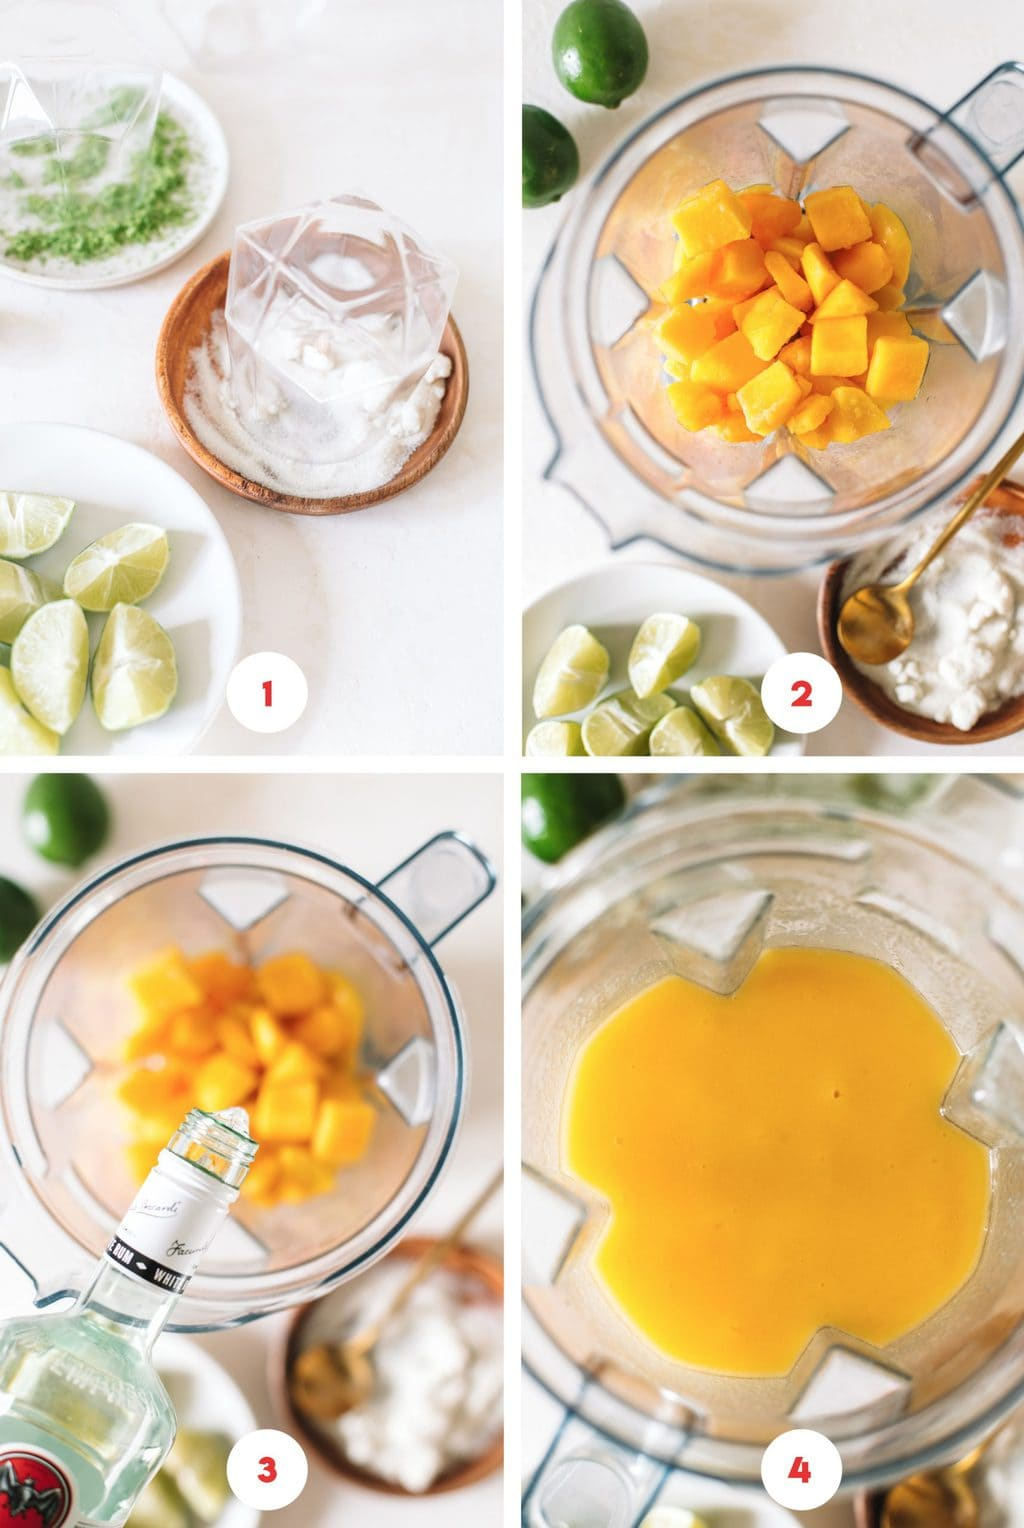 Step by step process on how to make frozen daiquiris in a blender.